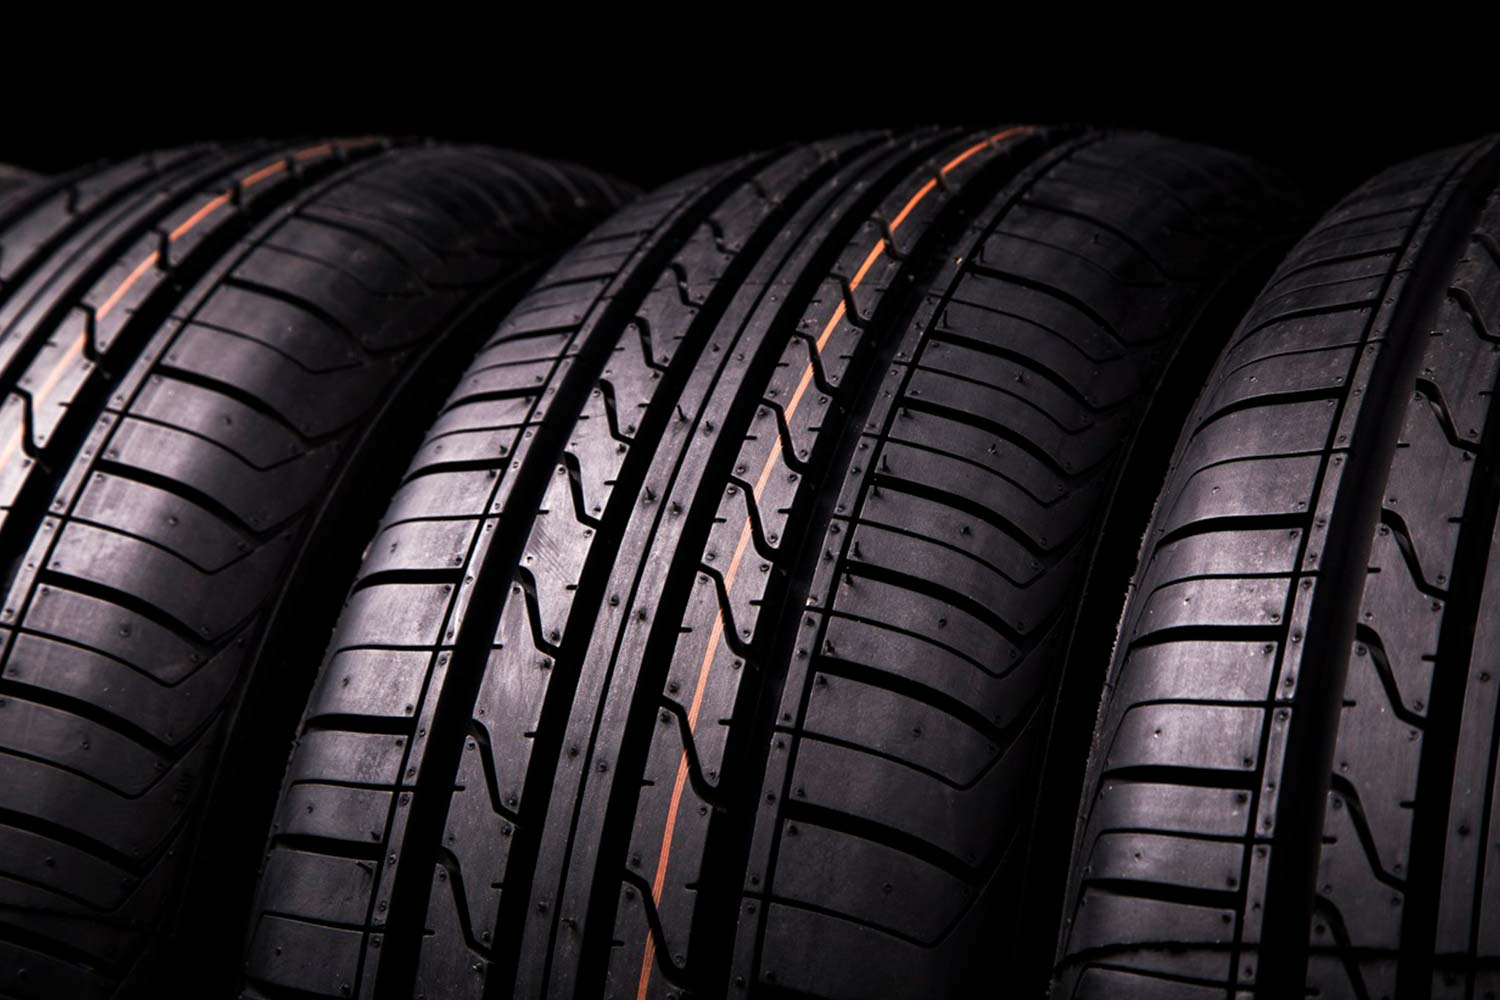 New Tyres | Dave's Tyres Warrington